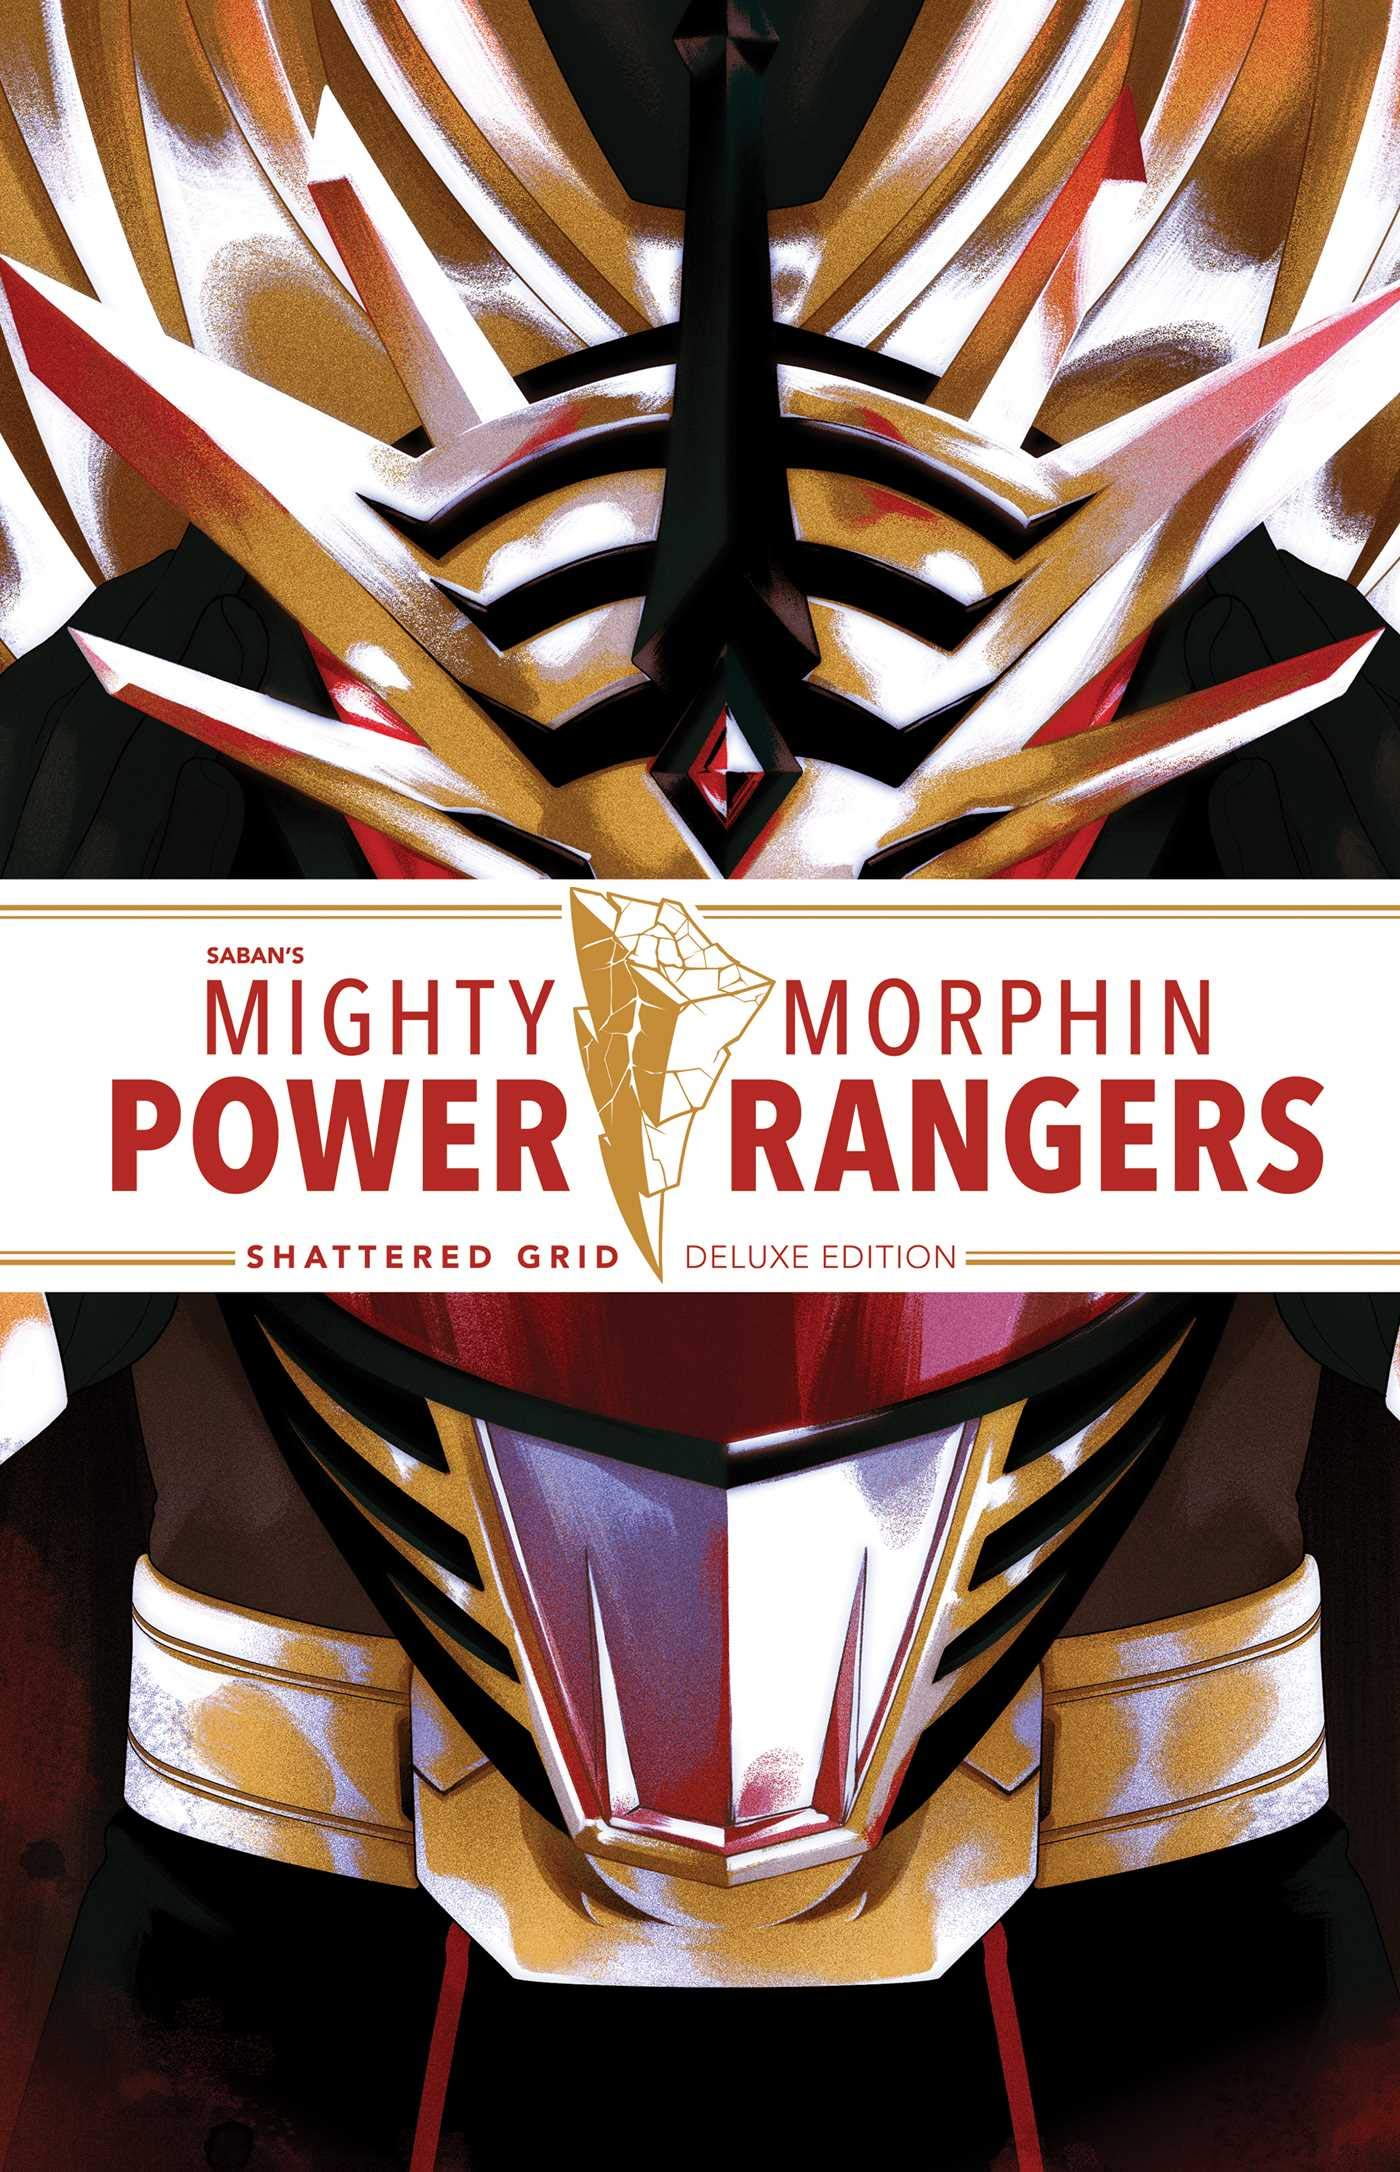 33d78356c Mighty Morphin Power Rangers: Shattered Grid Deluxe Edition Hardcover –  November 12, 2019